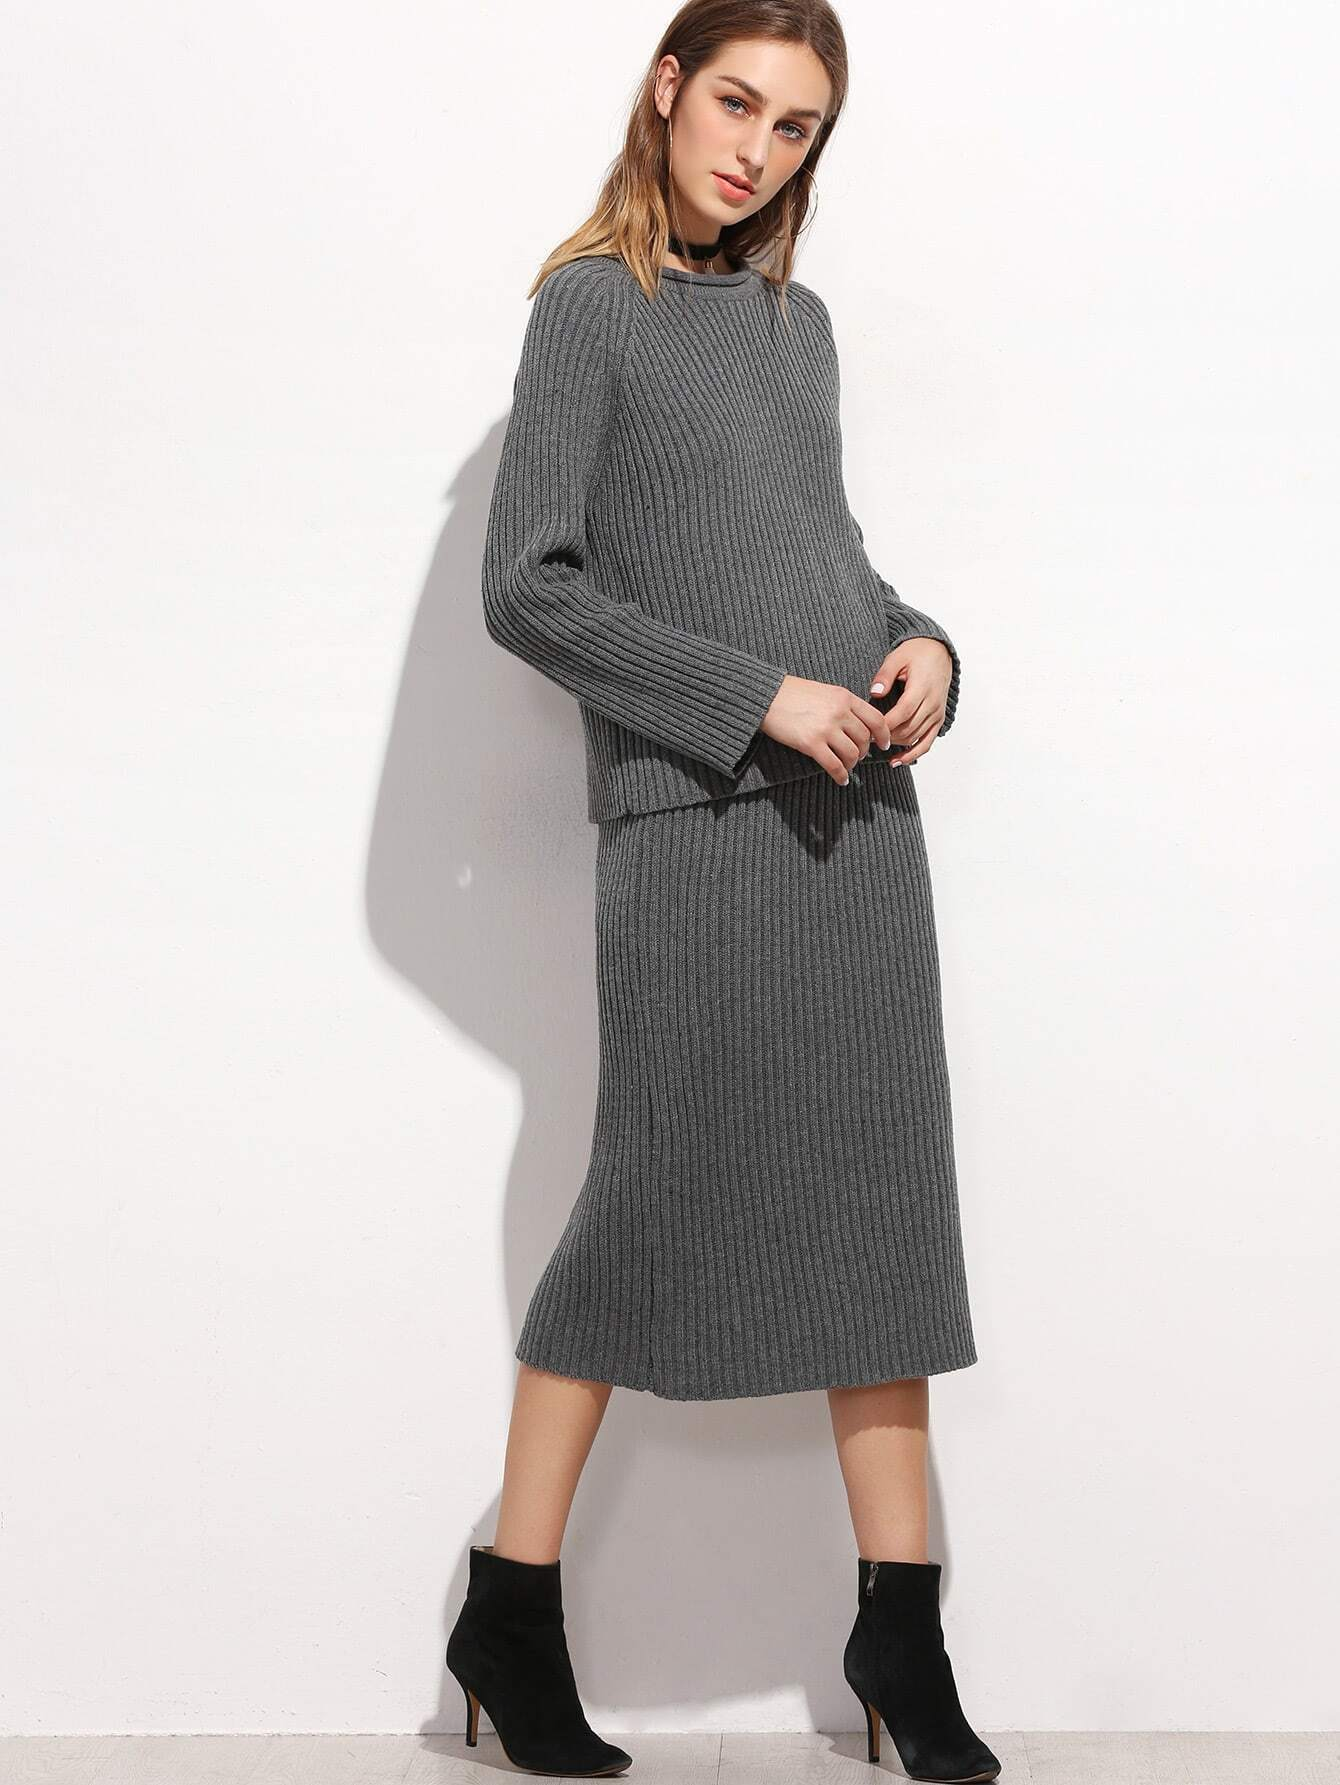 Dark Grey Raglan Sleeve Ribbed Sweater With Skirt twopiece161007101